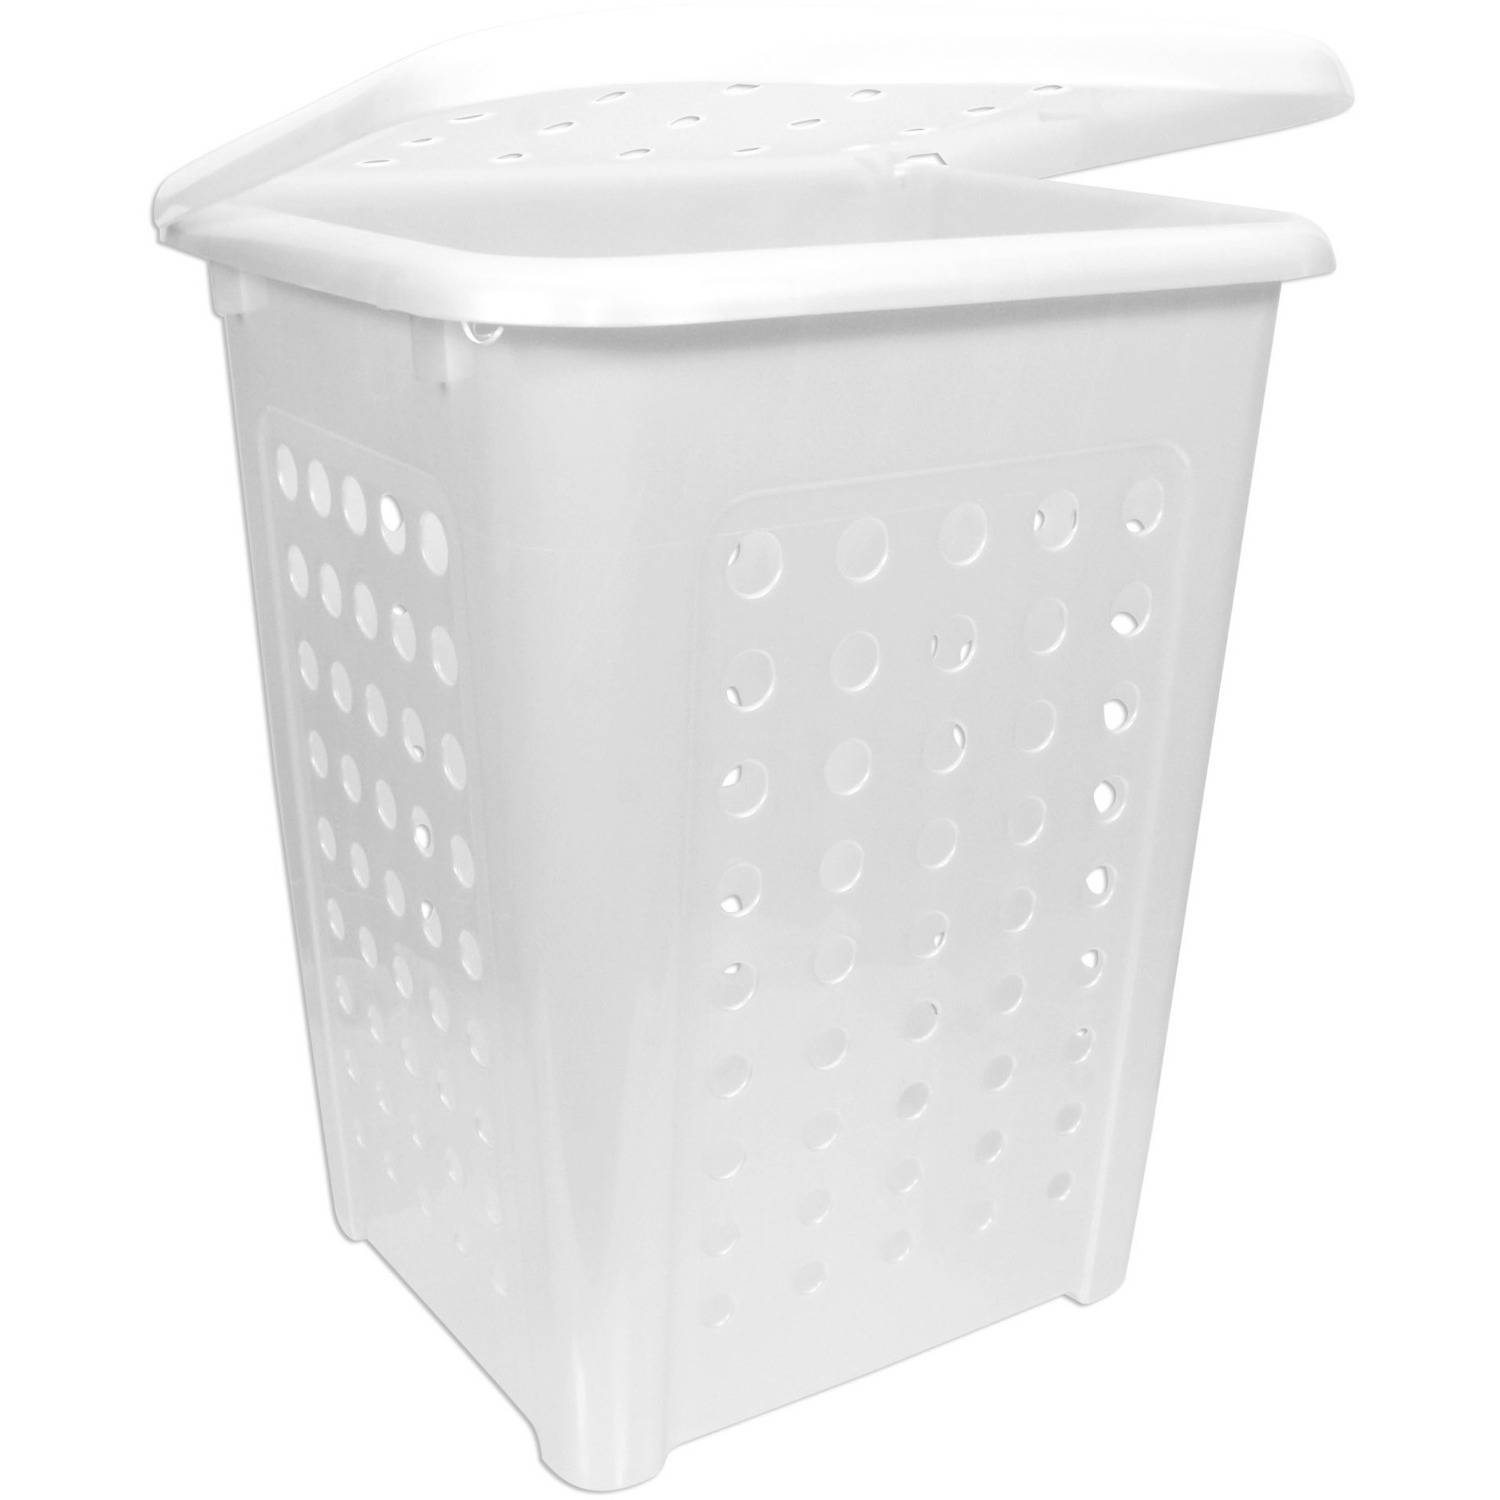 Laundry bags lessen the load - laundry hampers are hard to unload. Use wash bags to protect delicates; a laundry sorter hamper simplifies washing clothes. Shop xianggangdishini.gq for laundry .